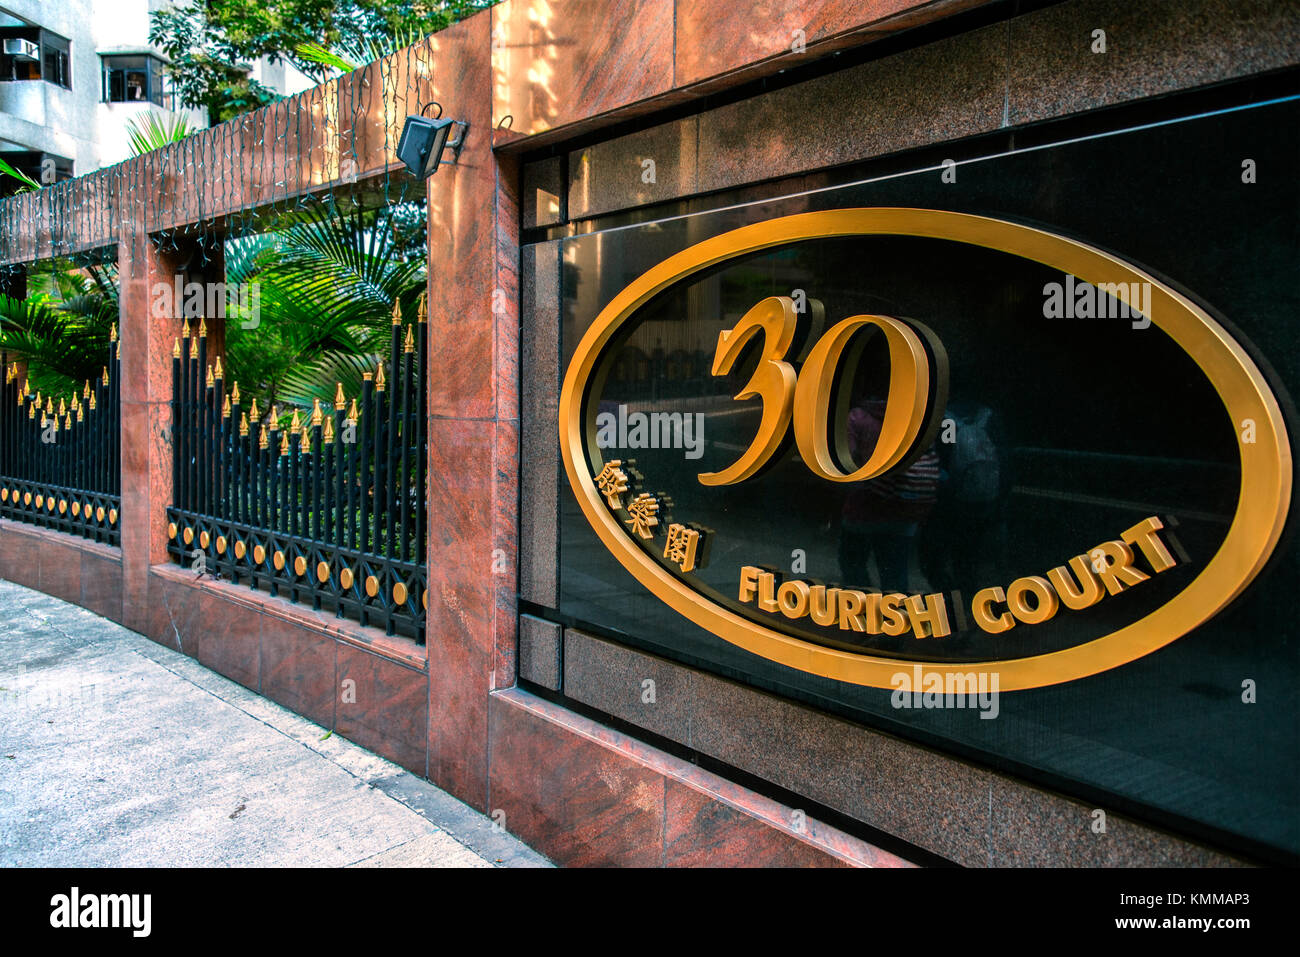 Flourish Court, High Rise Apartment  Block, Address Plaque and Boundary Wall, Hong Kong - Stock Image